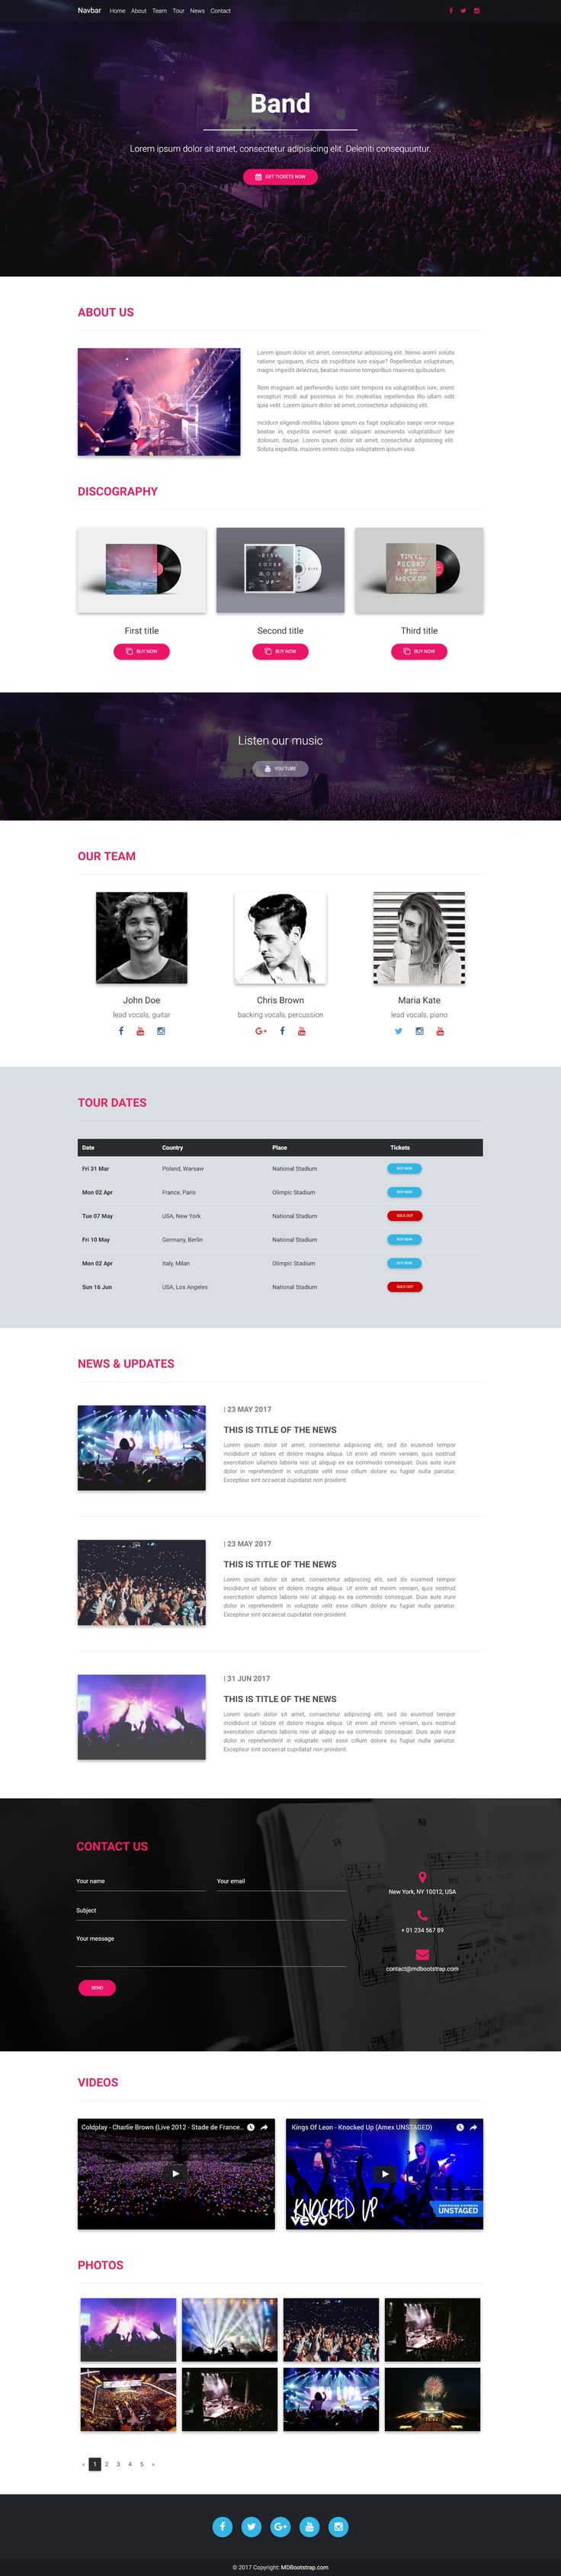 Fully responsive Band Landing Page Template, created with Material Design for Bootstrap